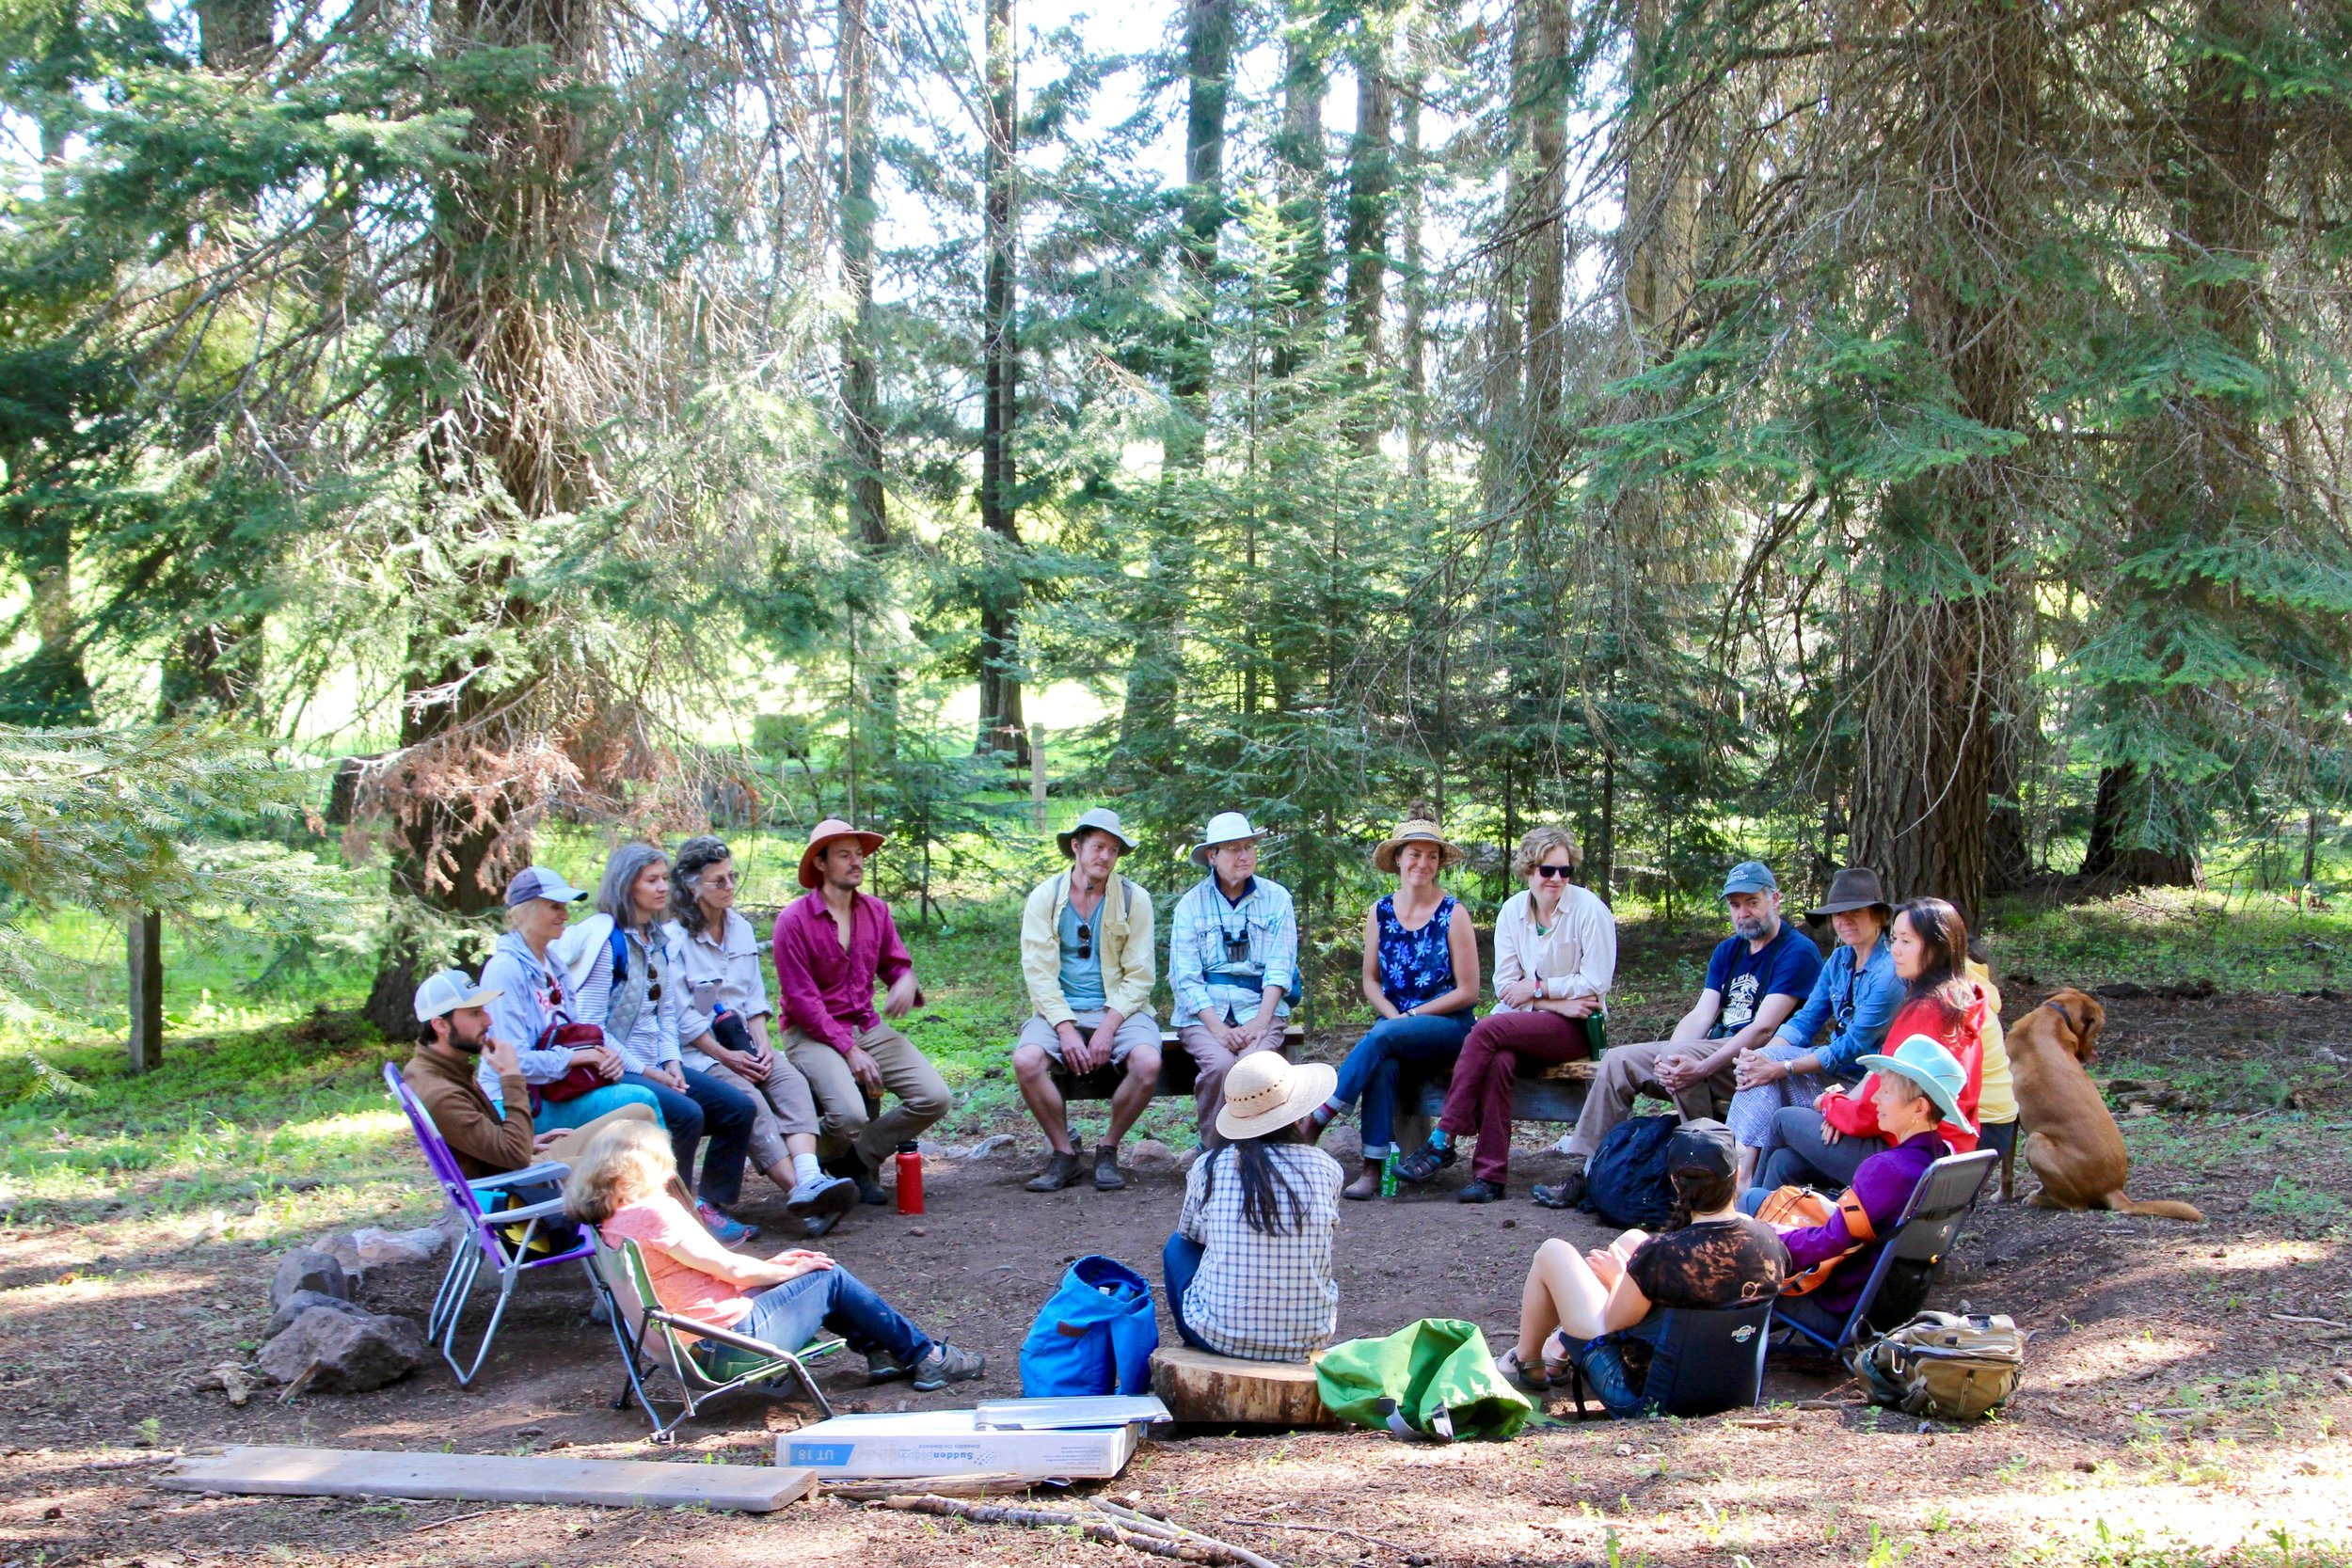 The first forest discussion circle. A dozen artists' prepared for students' arrival by sharing about their experiences of artistic inspiration and mentors.